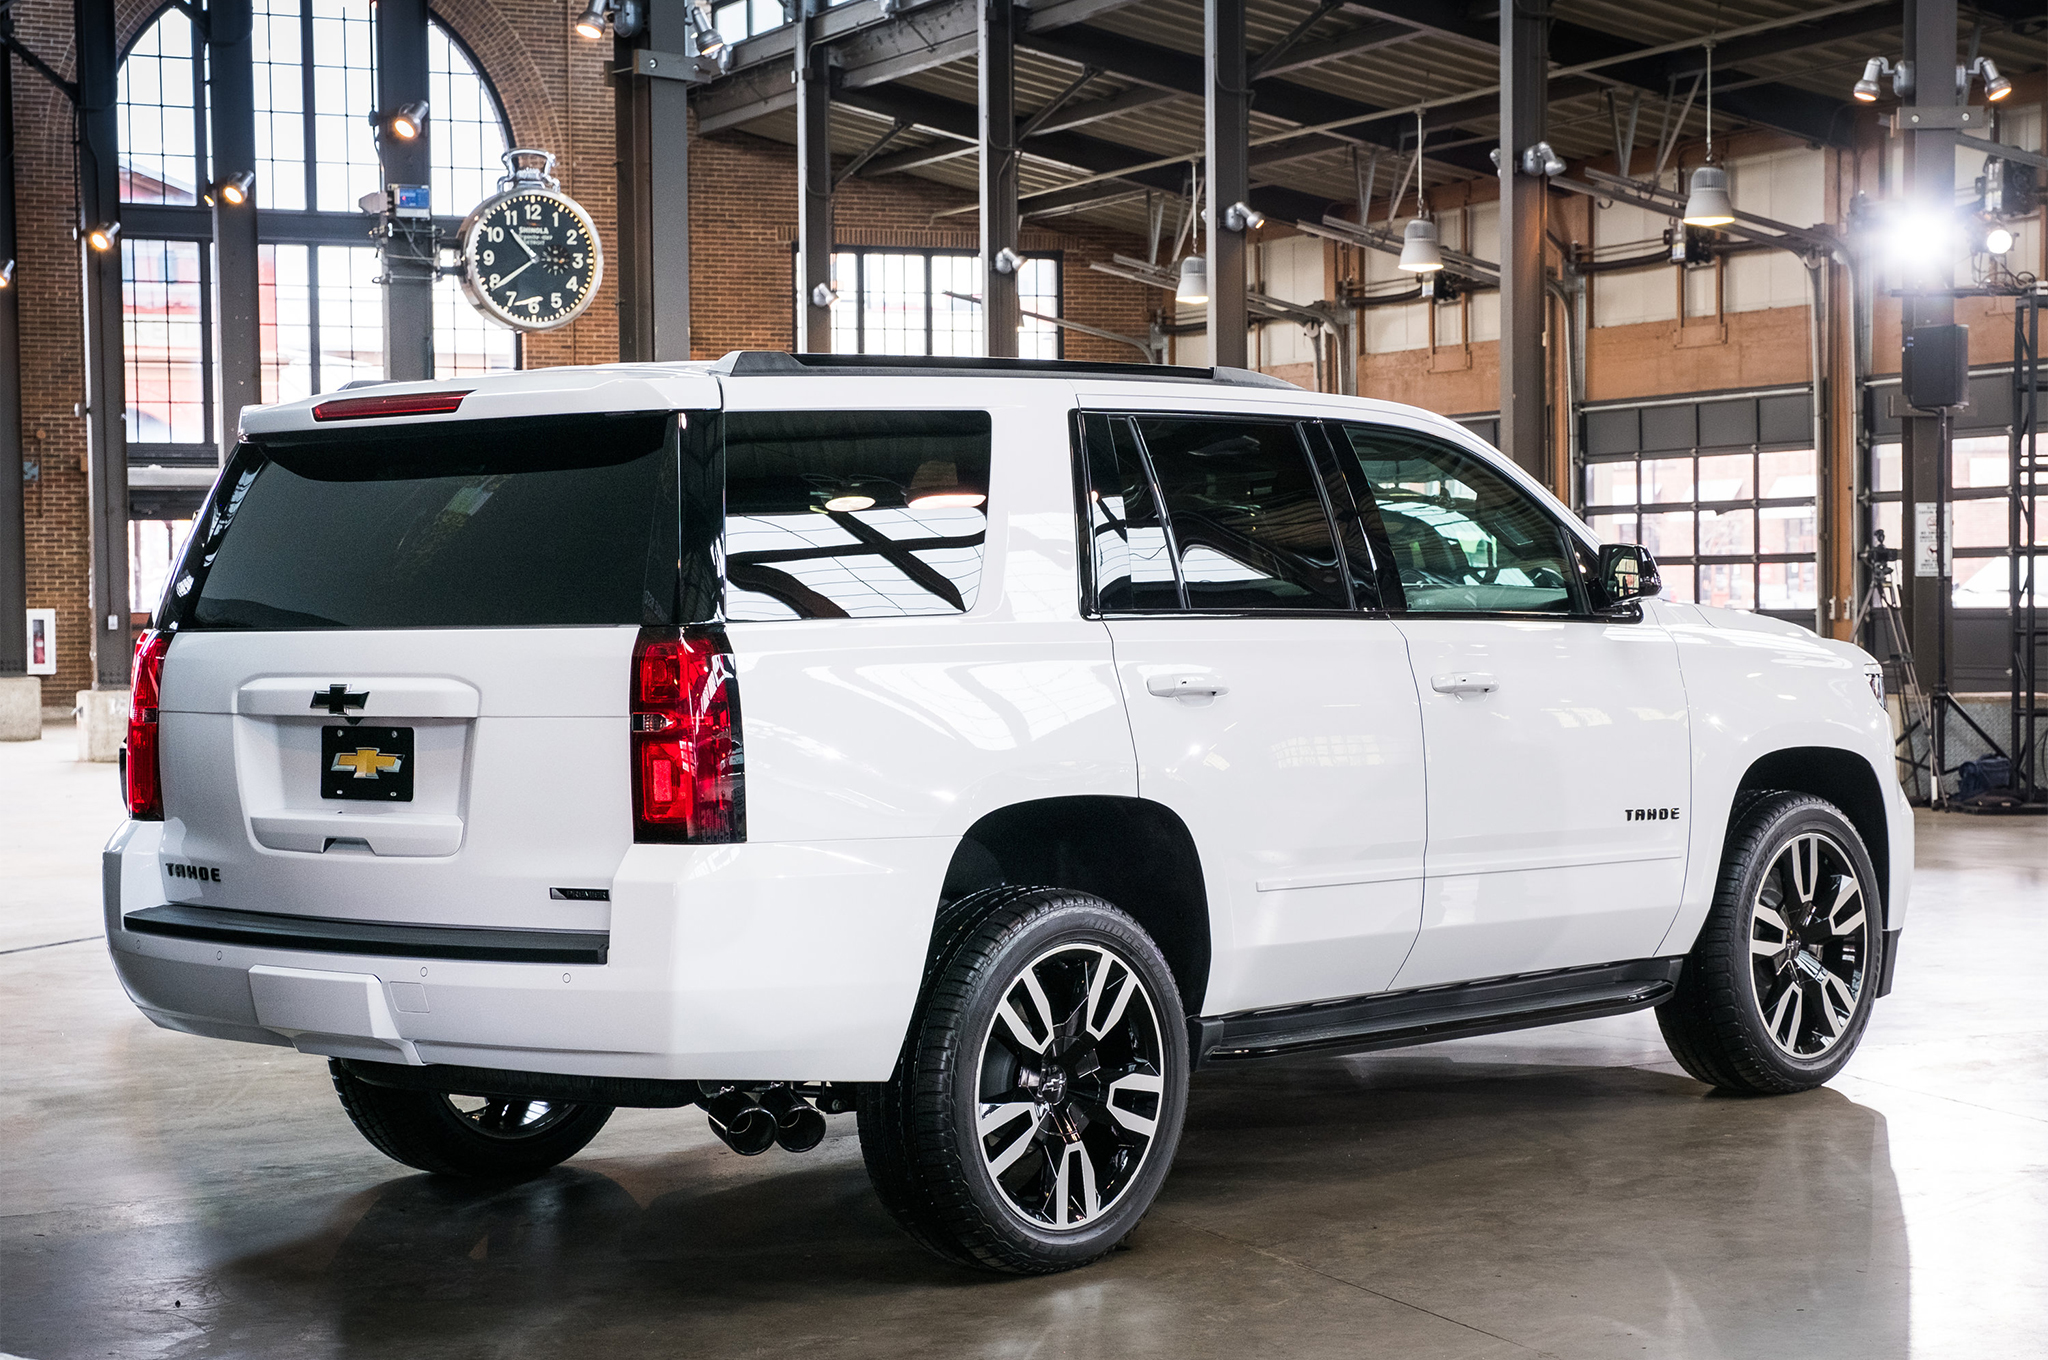 tahoe chevy chevrolet rst suburban redesign edition diesel truck z71 suv sport vs rally rear palisade package hyundai ltz interior